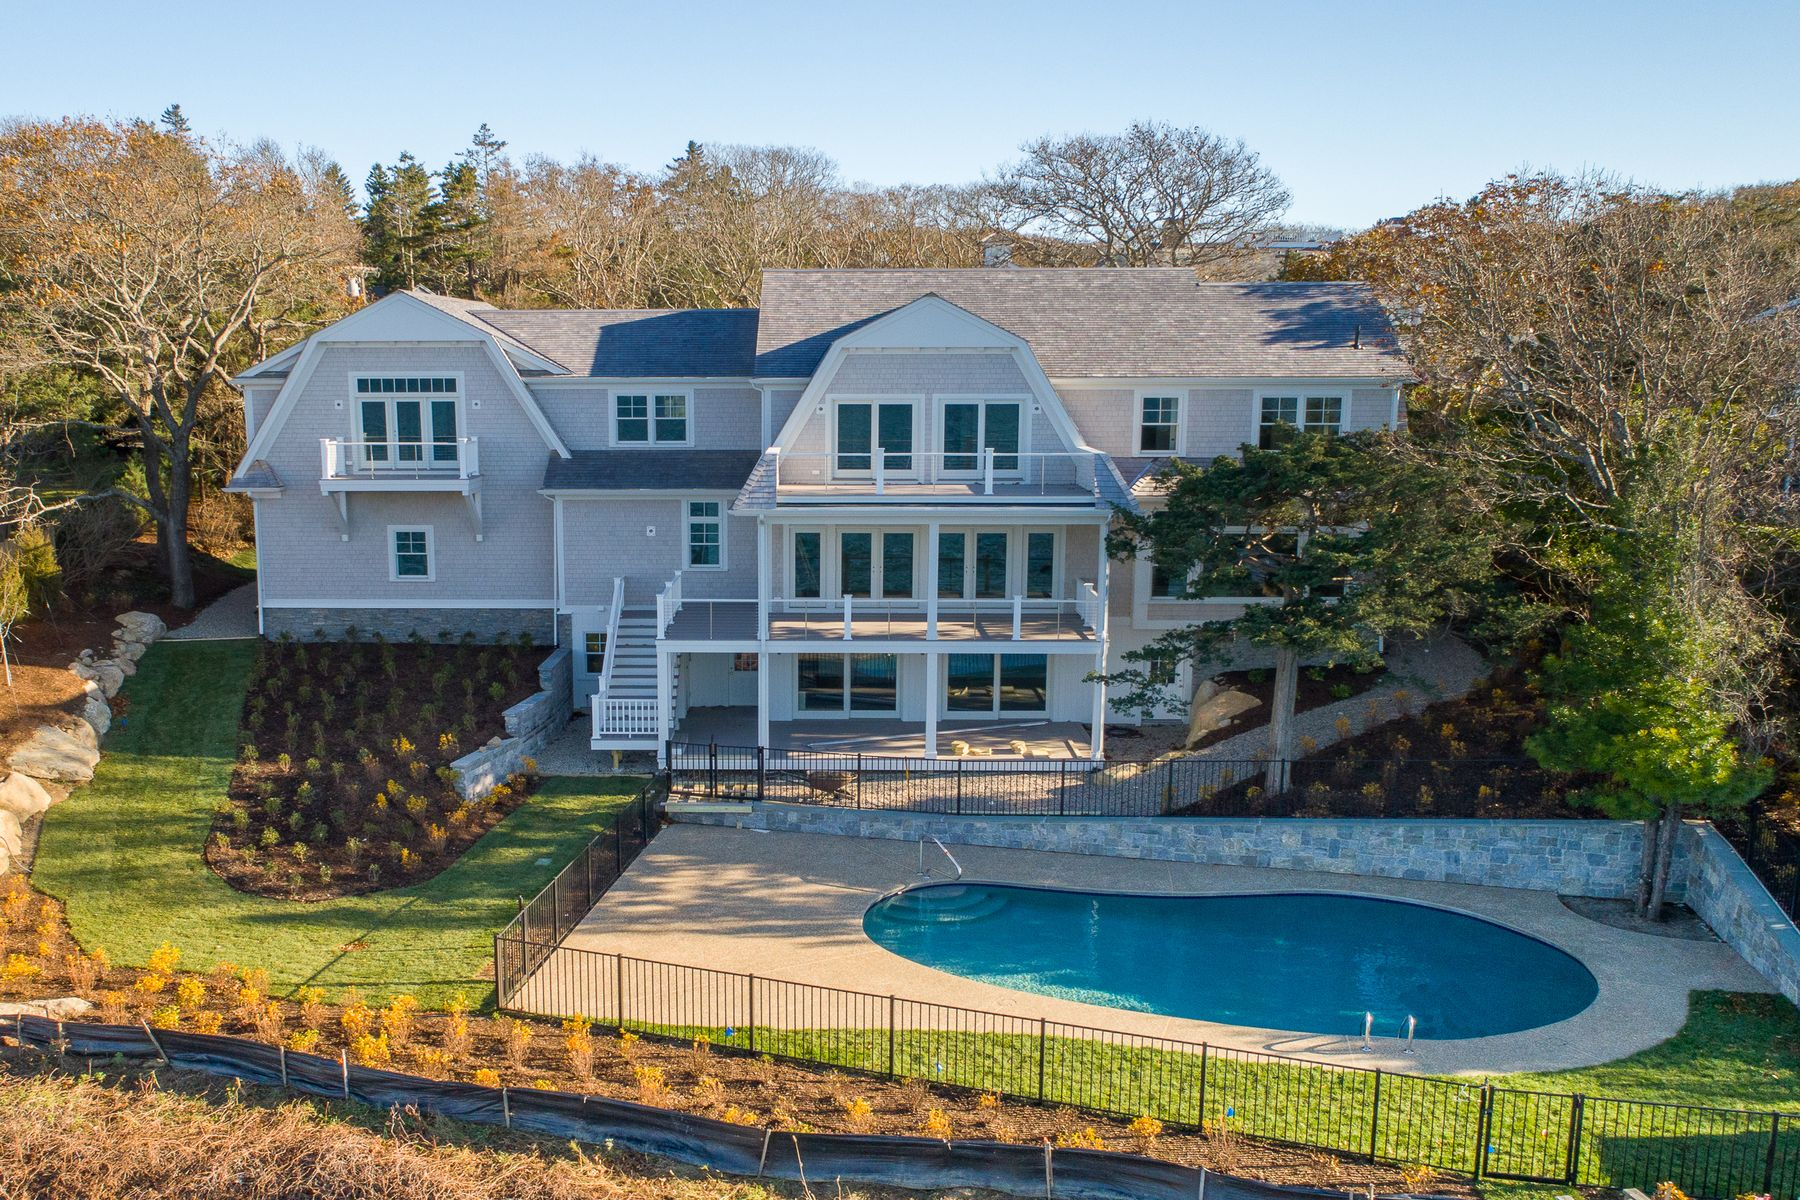 Single Family Home for Active at Spectacular Ocean Views 6 Uncatena N Falmouth, Massachusetts 02574 United States